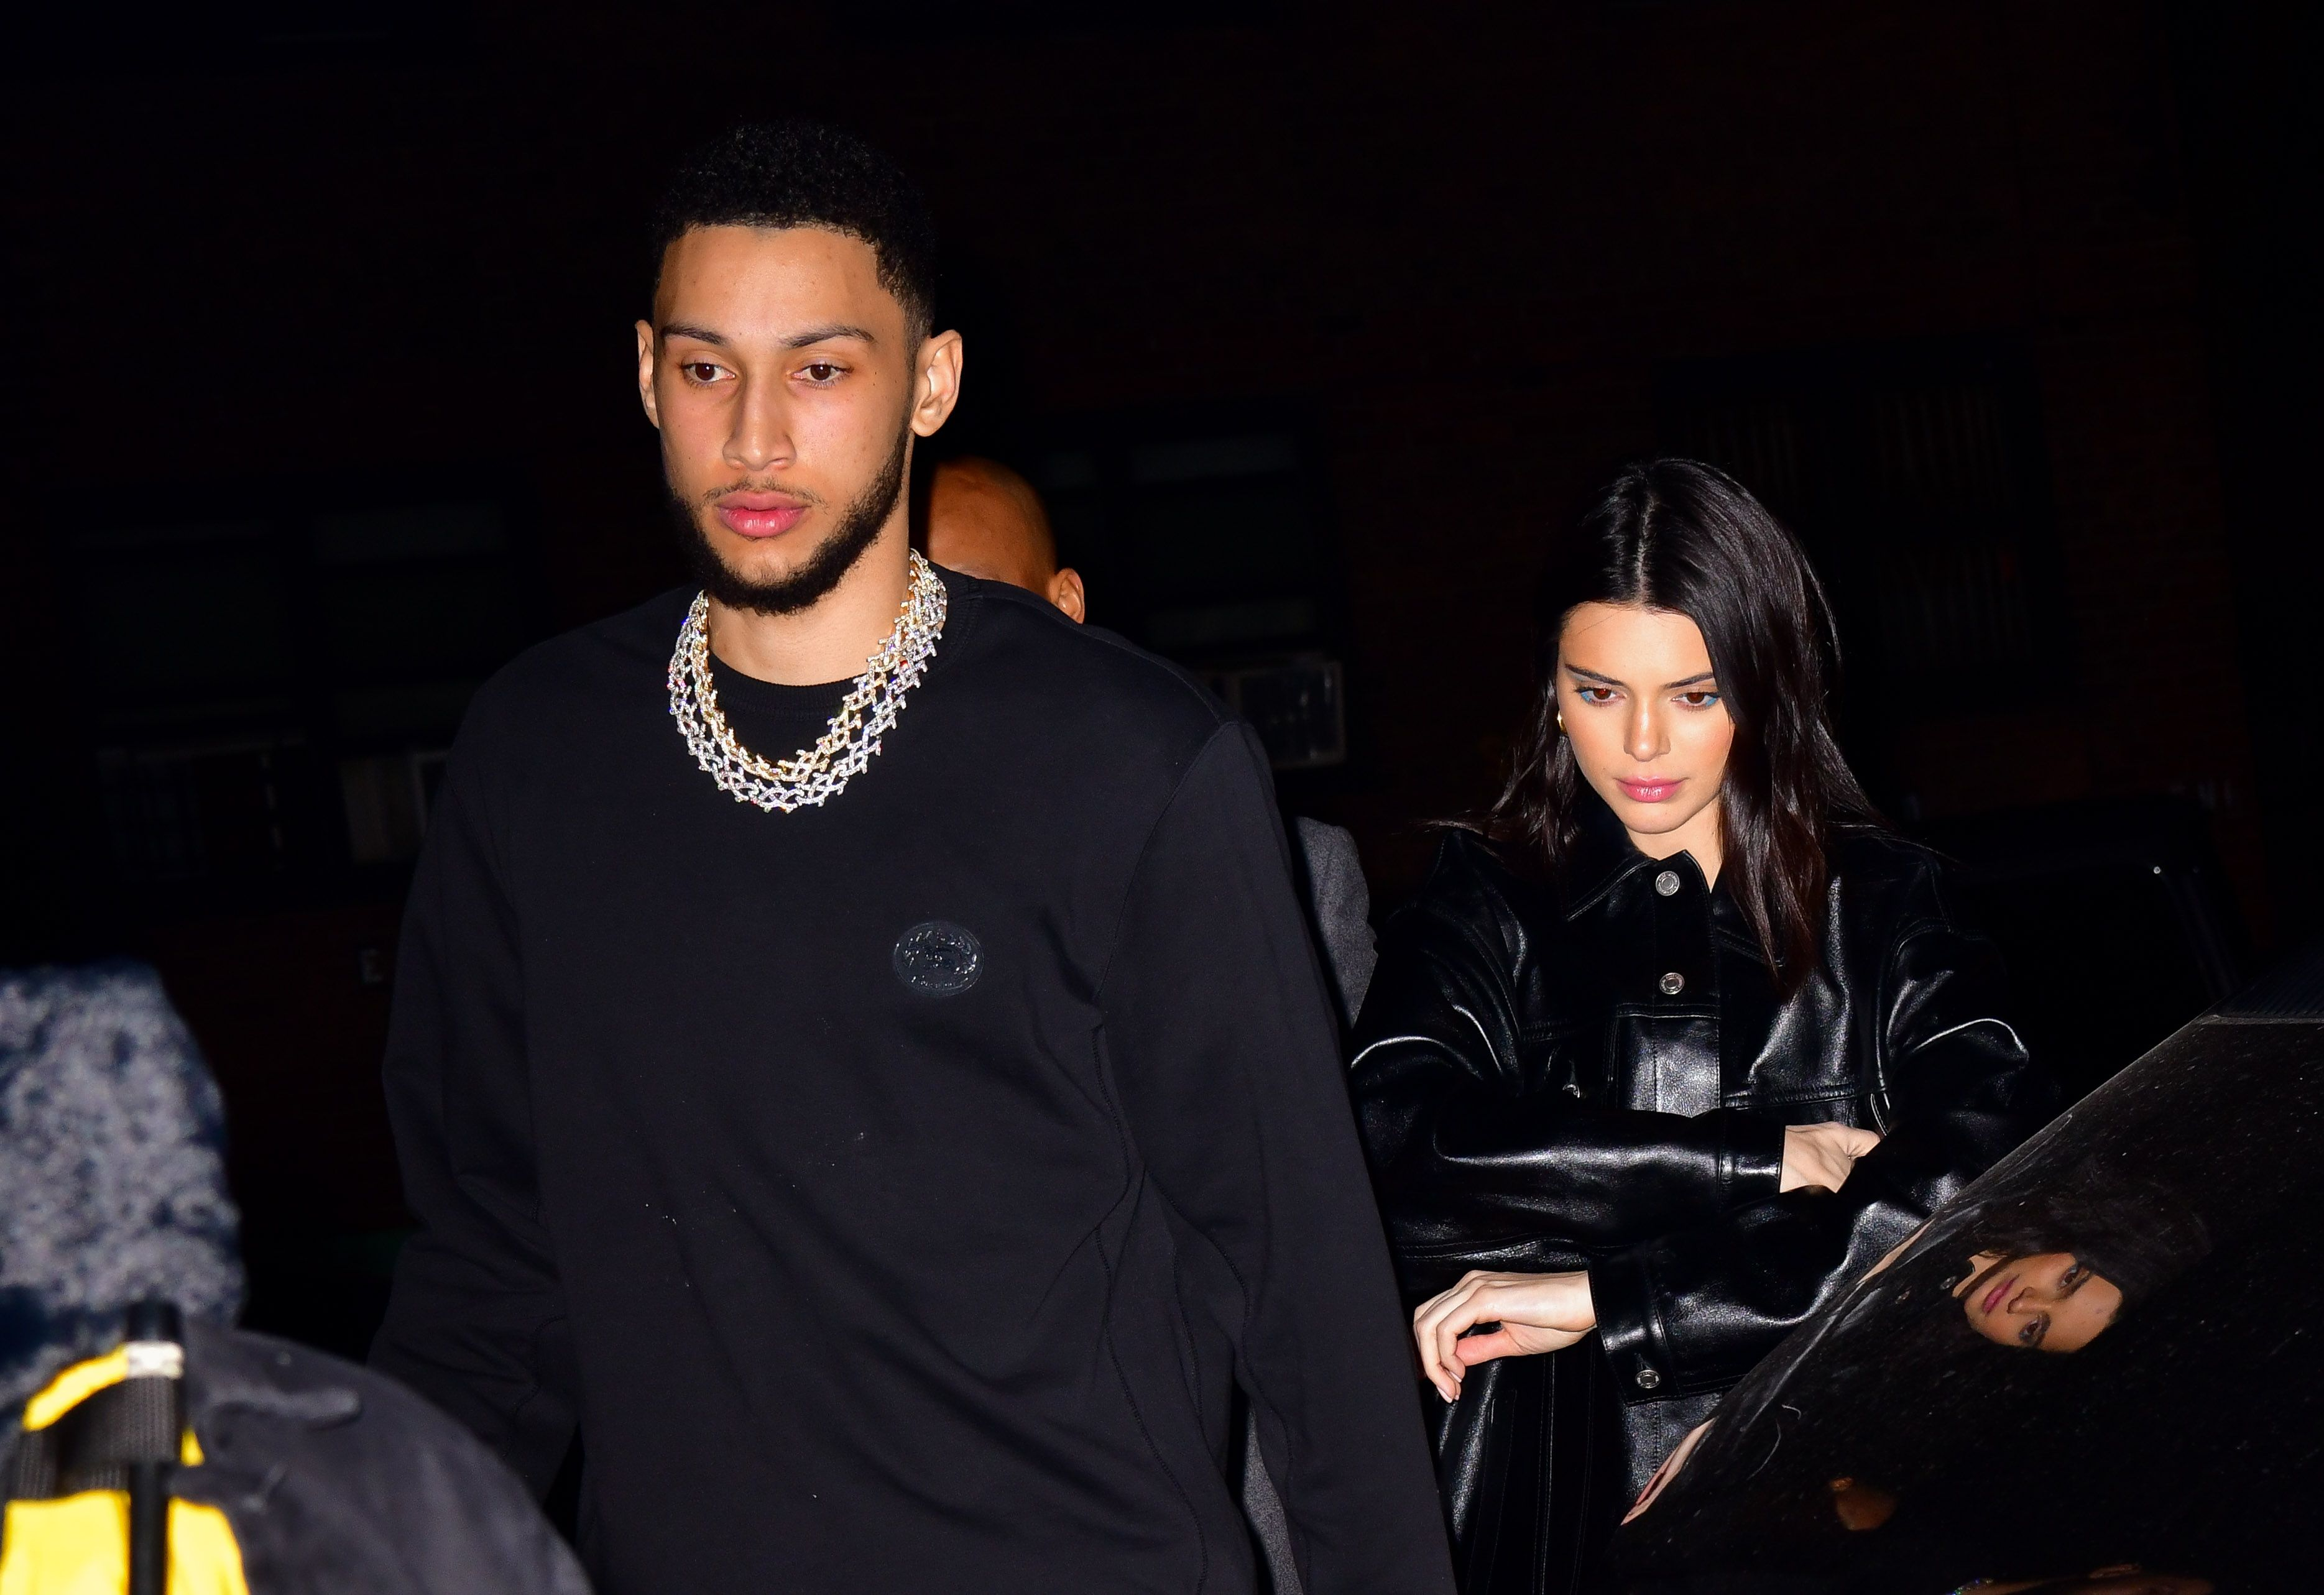 Kendall Jenner And Ben Simmons Had A Rare Public Date With Actual Hand Holding For Valentines Day